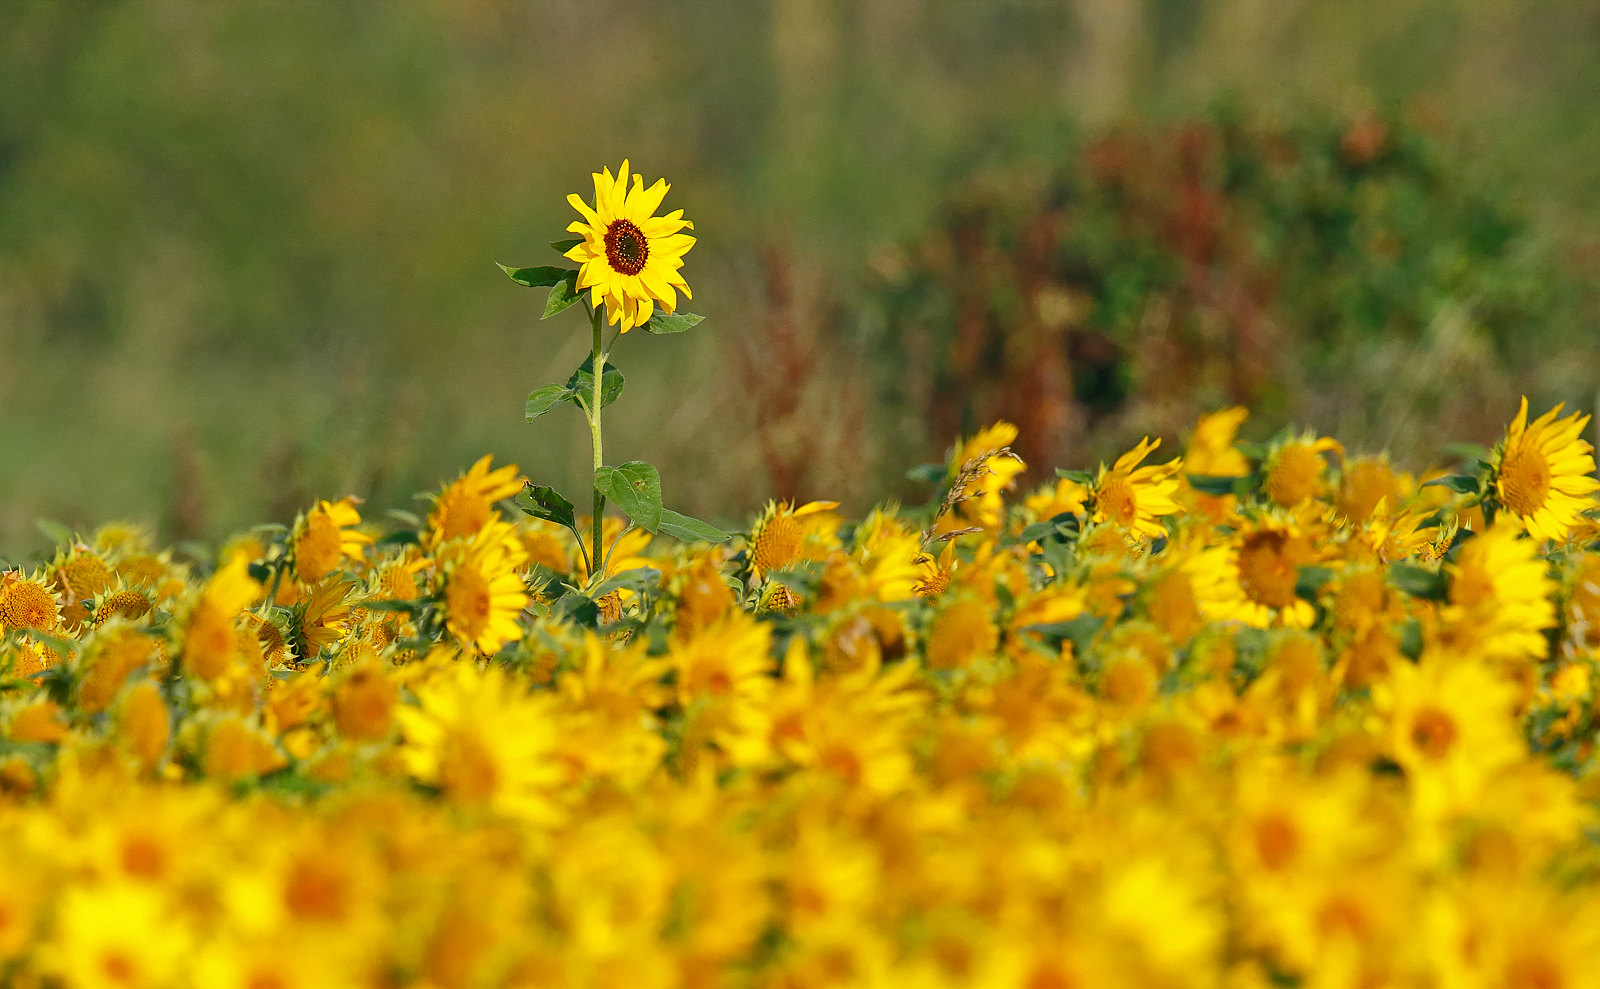 Sun Flowers - I can see the Dowitcher!